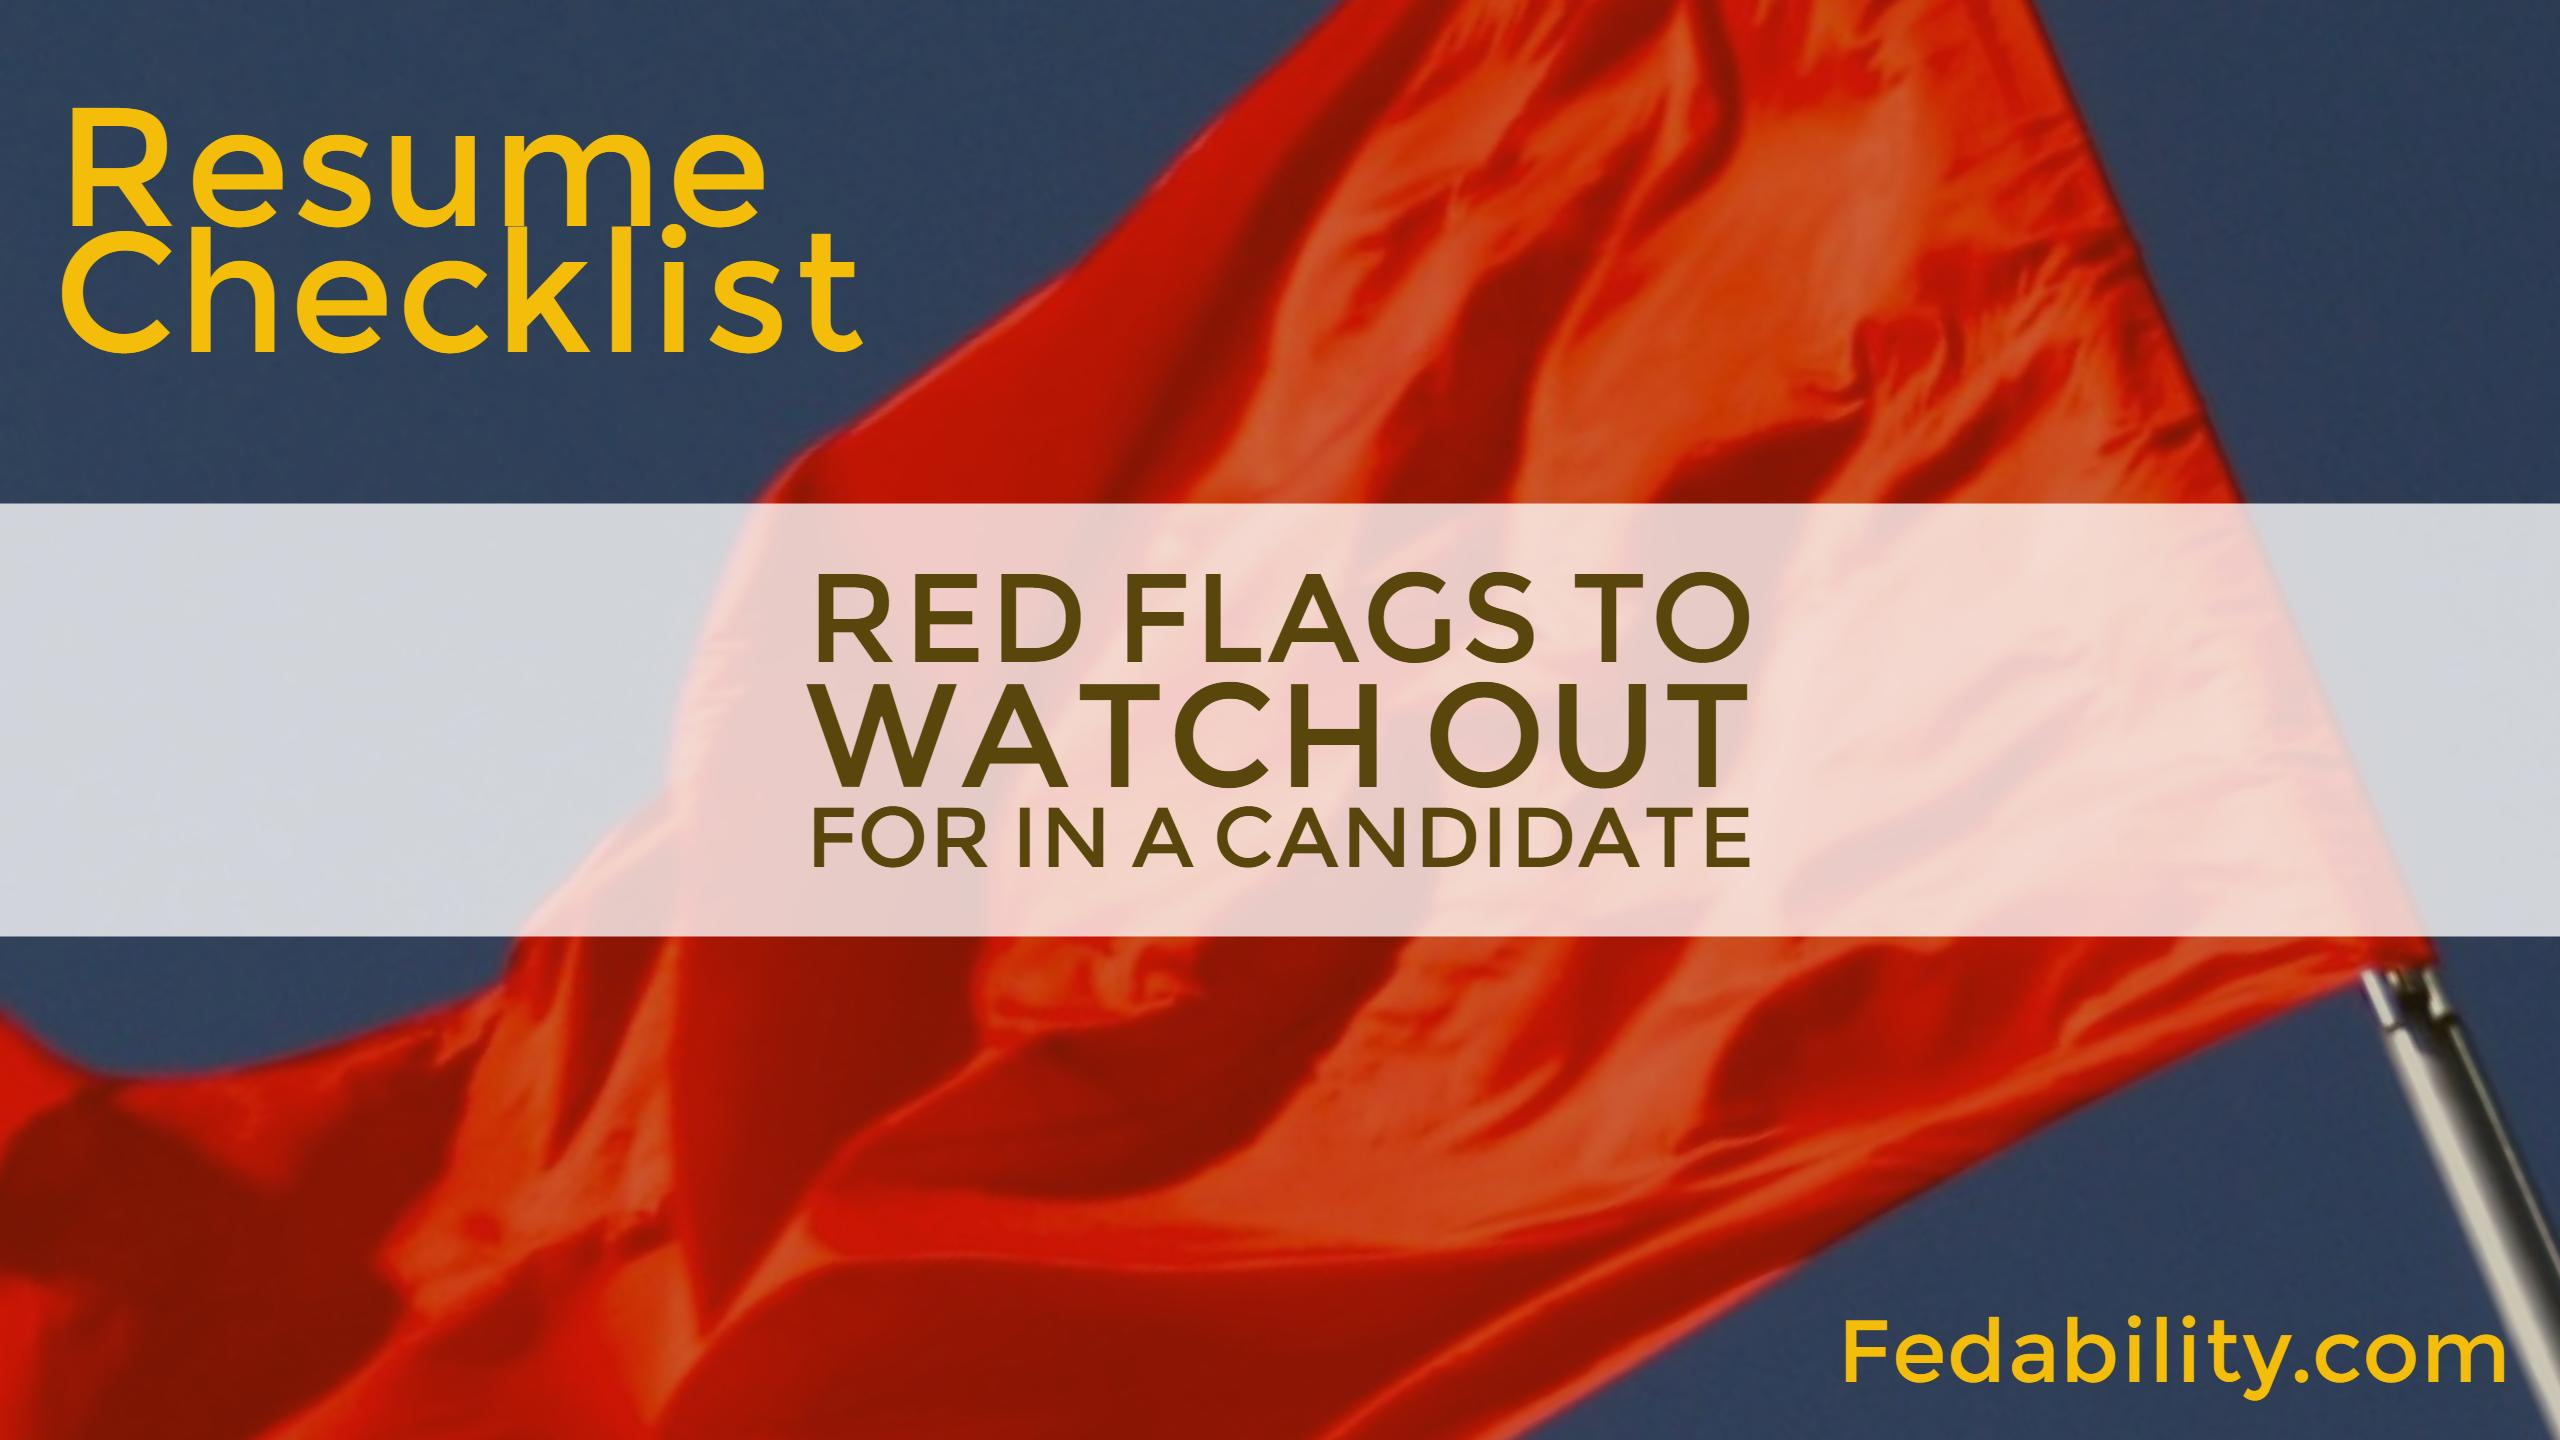 Resume Checklist 5 Red Flags To Watch Out For In A Candidate